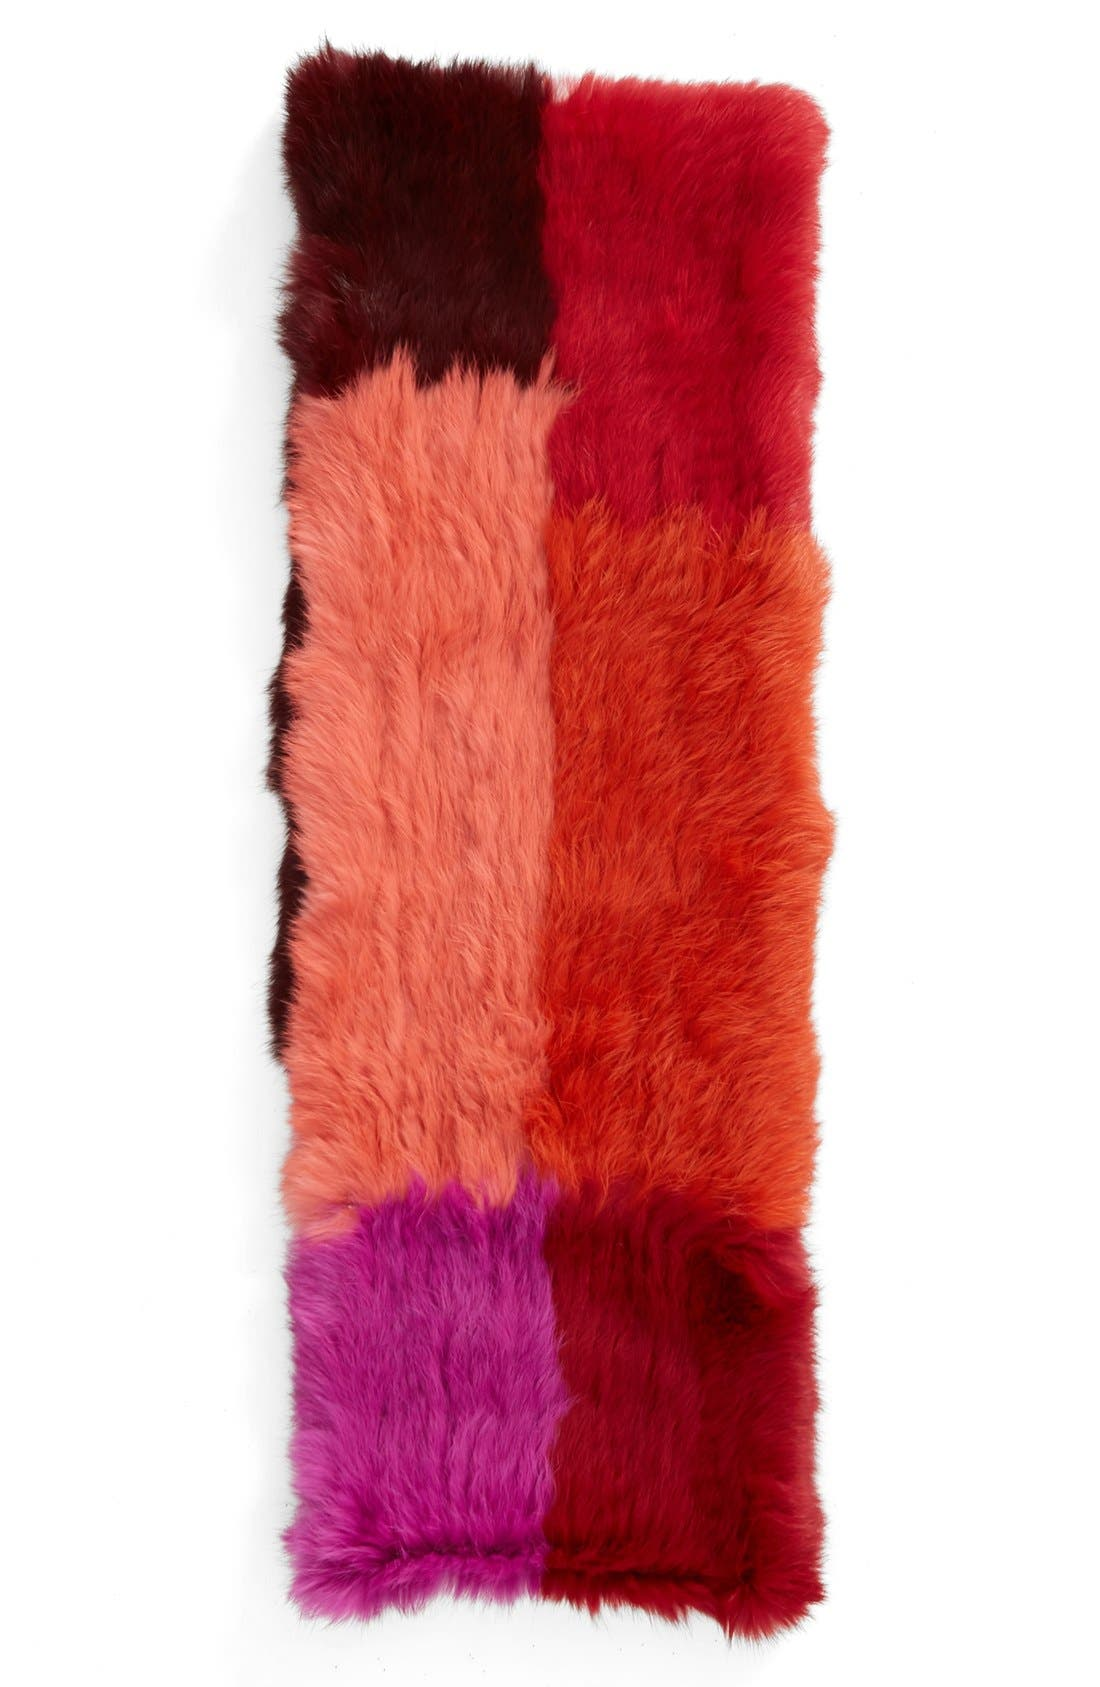 Colorblock Genuine Rabbit Fur Infinity Scarf,                             Alternate thumbnail 2, color,                             650